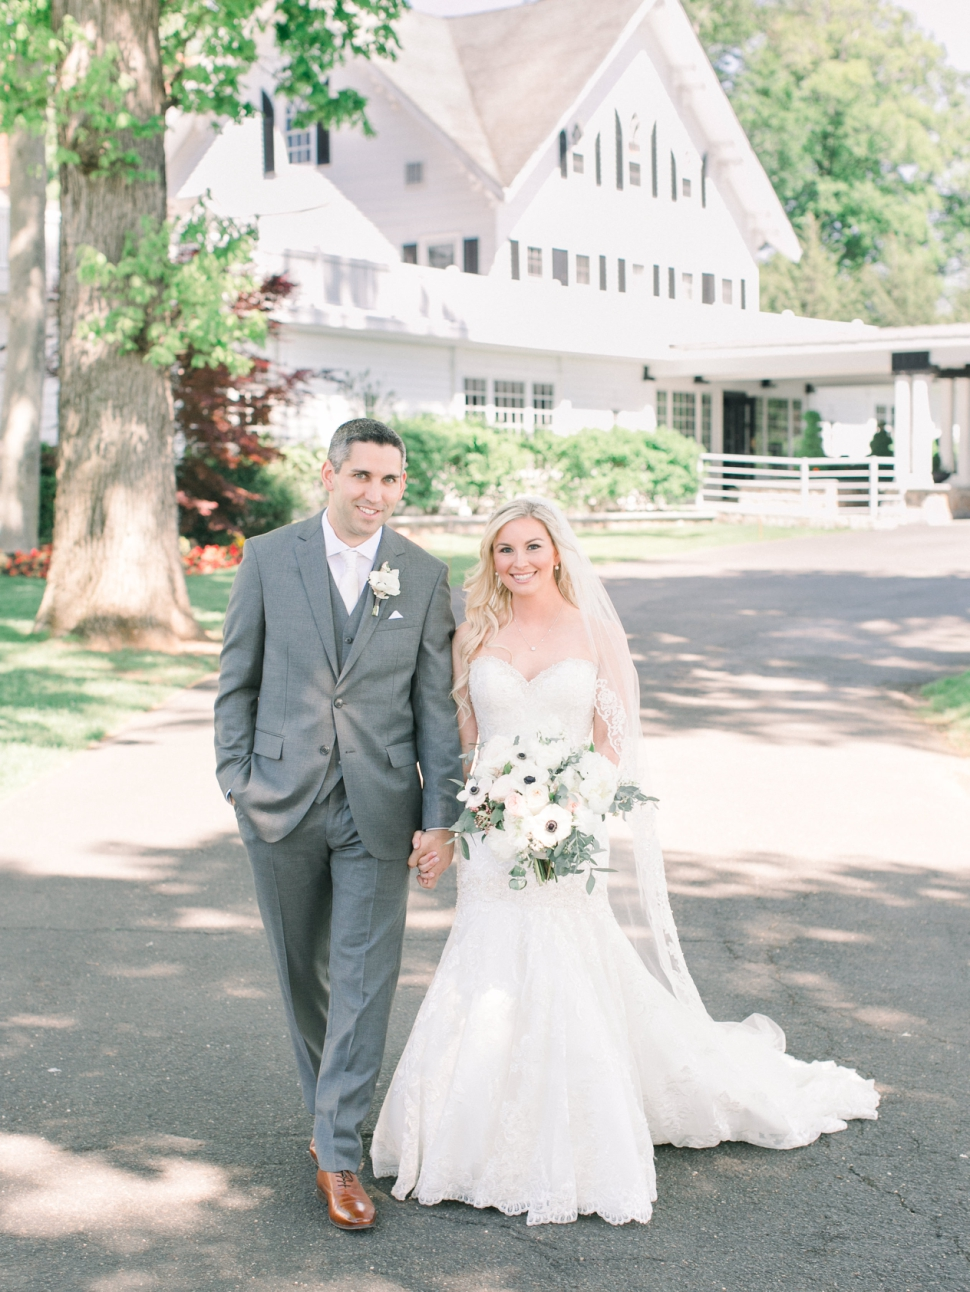 The-Ryland-Inn-Wedding-Photographer-Whitehouse-Station-NJ-Photographer-Cassi-Claire_15.jpg